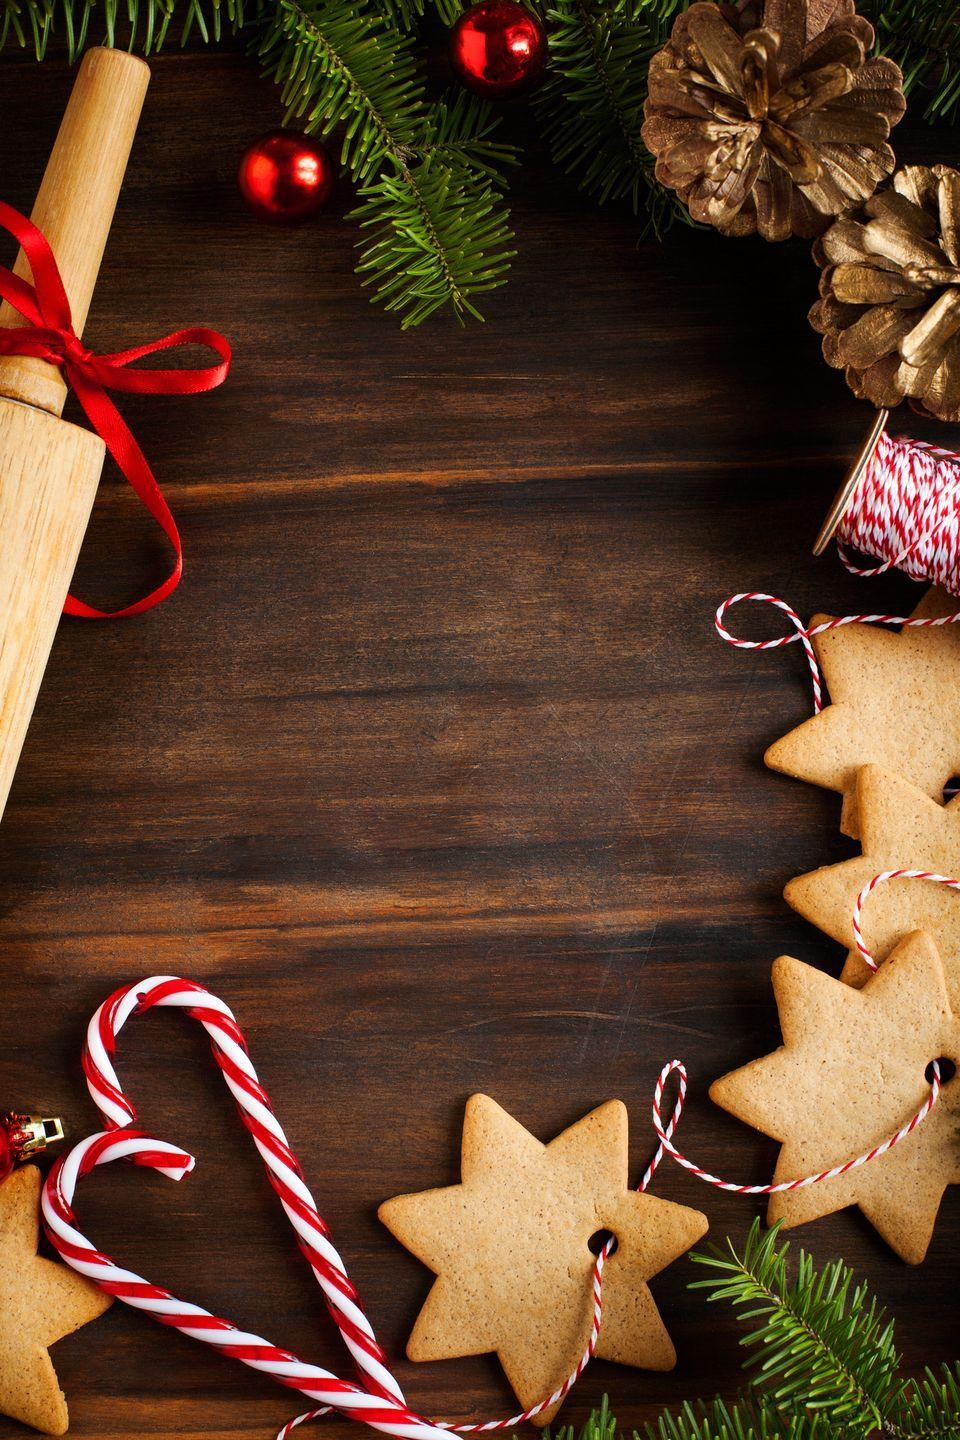 """<p>For decorative items that will only be on display for a few months out of the year, it's not worth shelling out the big bucks. Instead, shop the <a href=""""https://www.dollartree.com/Seasonal-Holidays/1248/index.cat"""" rel=""""nofollow noopener"""" target=""""_blank"""" data-ylk=""""slk:Dollar Tree's discounted selection of wreaths, florals, garland and more"""" class=""""link rapid-noclick-resp"""">Dollar Tree's discounted selection of wreaths, florals, garland and more</a>. </p>"""